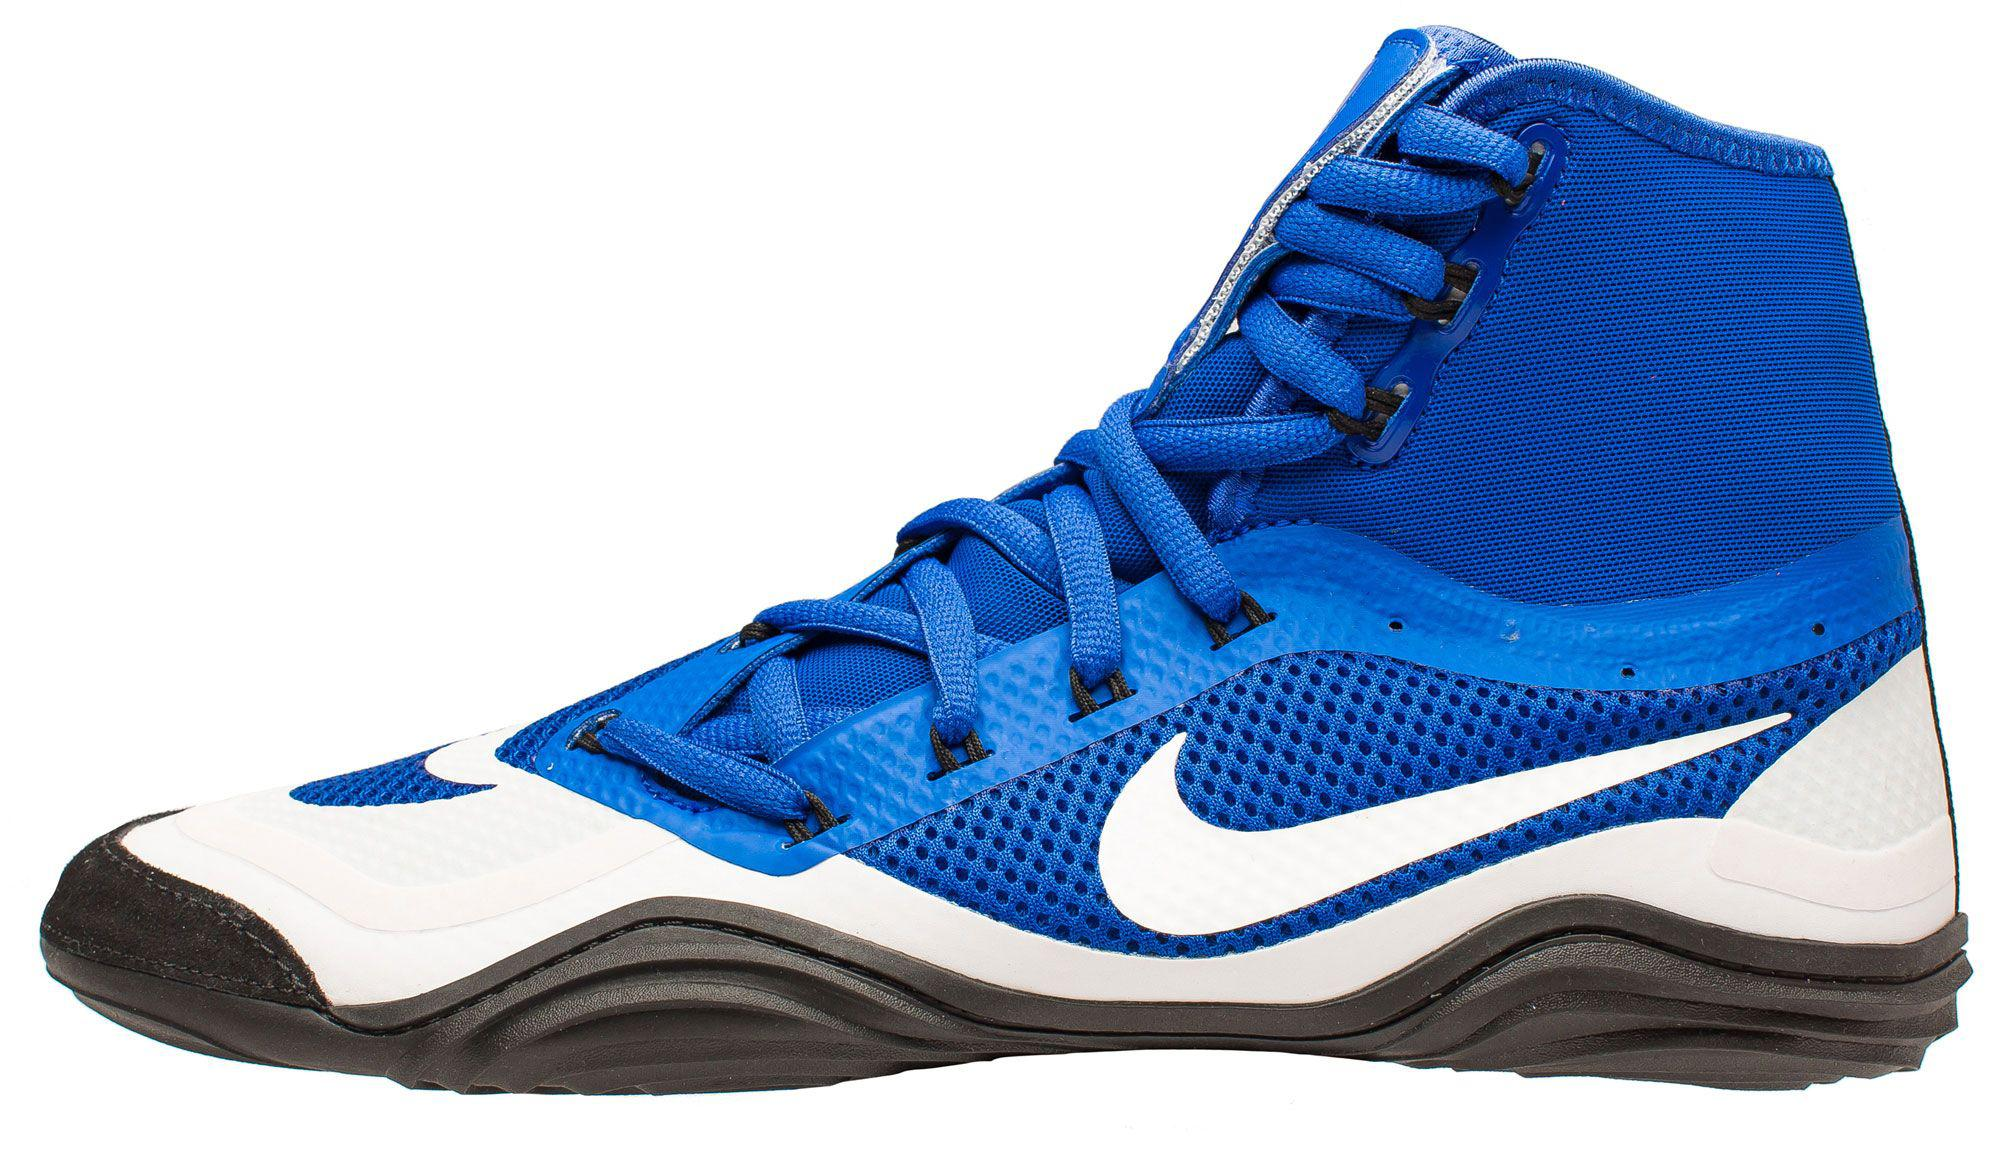 Lyst - Nike Hypersweep Wrestling Shoes in Blue for Men a616bdad7